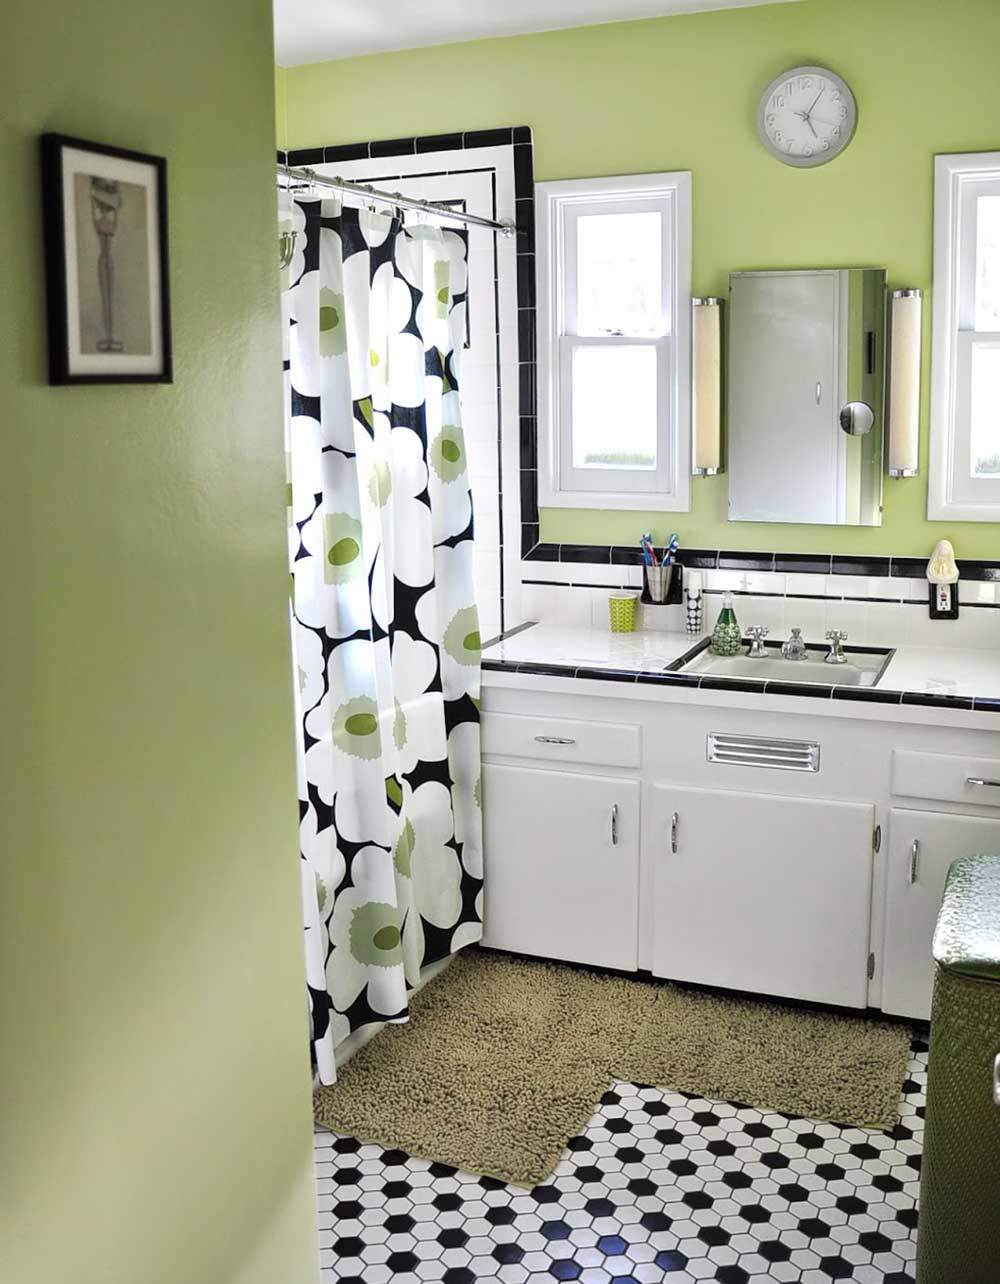 Black and white tile bathrooms done 6 different ways for 2 bathroom